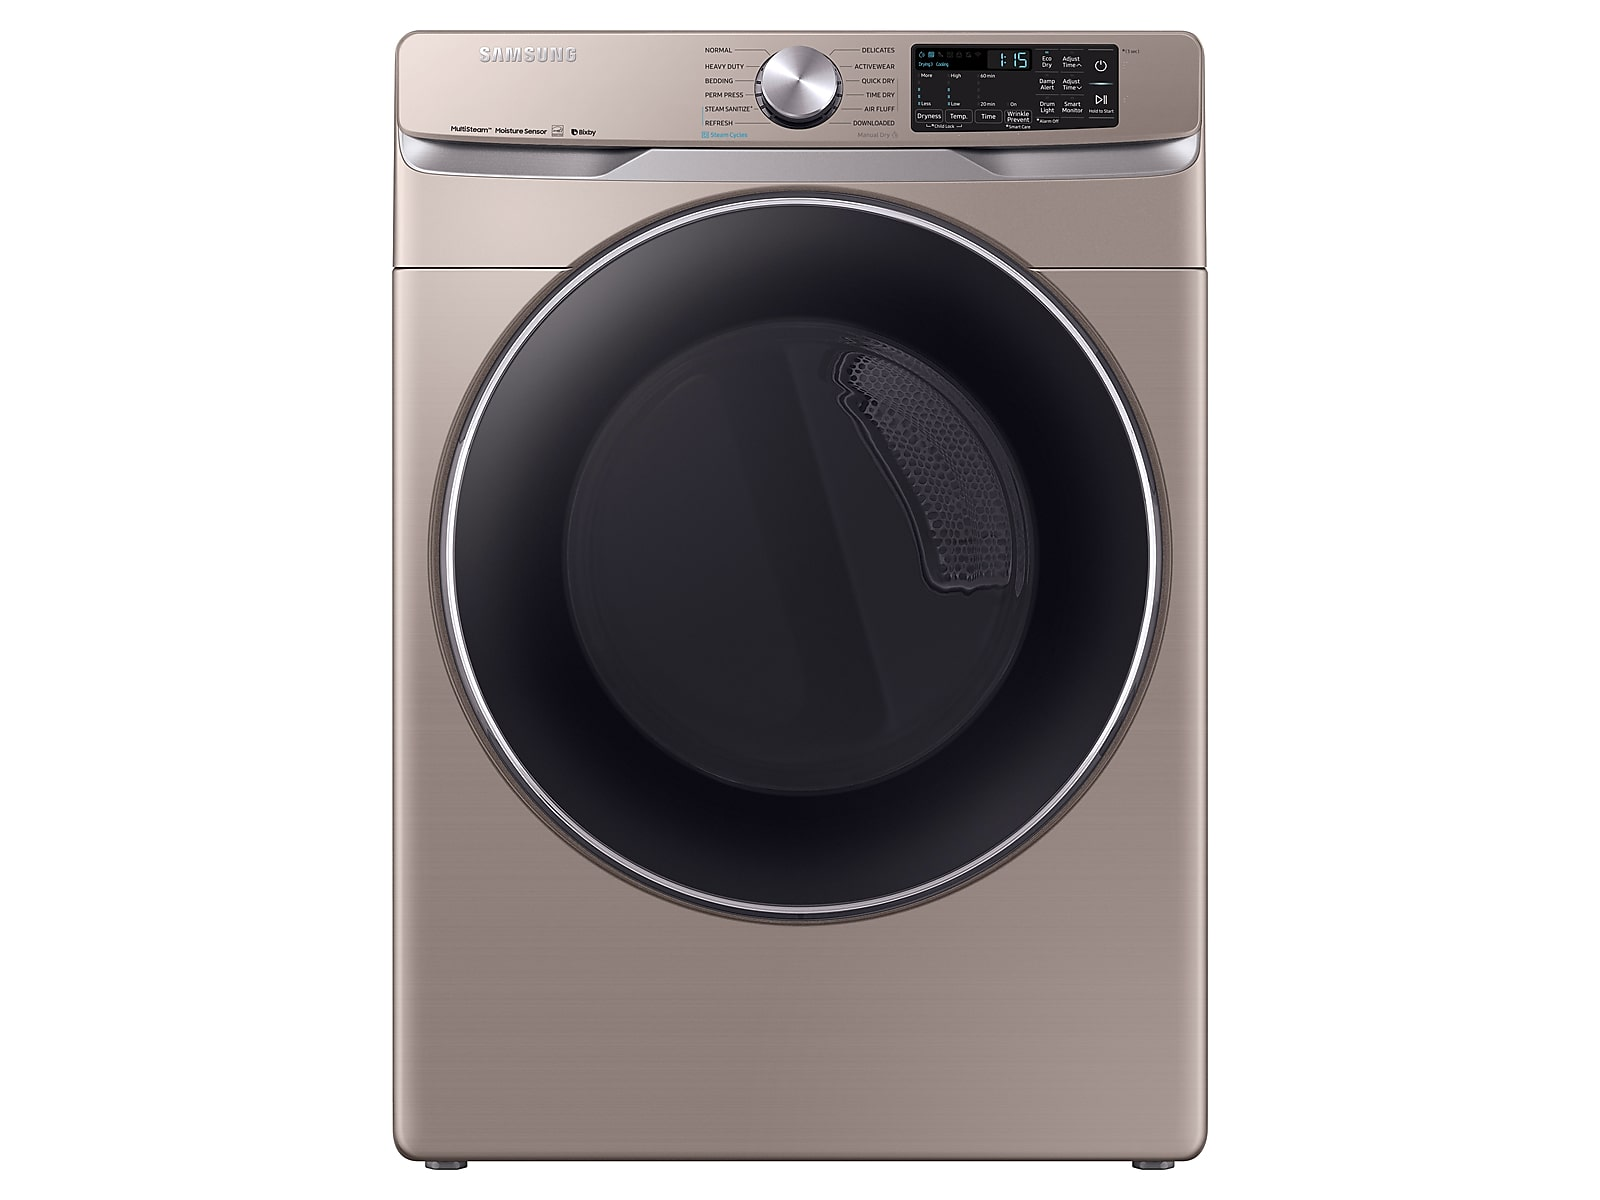 Samsung coupon: Samsung 7.5 cu. ft. Smart Gas Dryer with Steam Sanitize+ in Champagne(DVG45R6300C/A3)